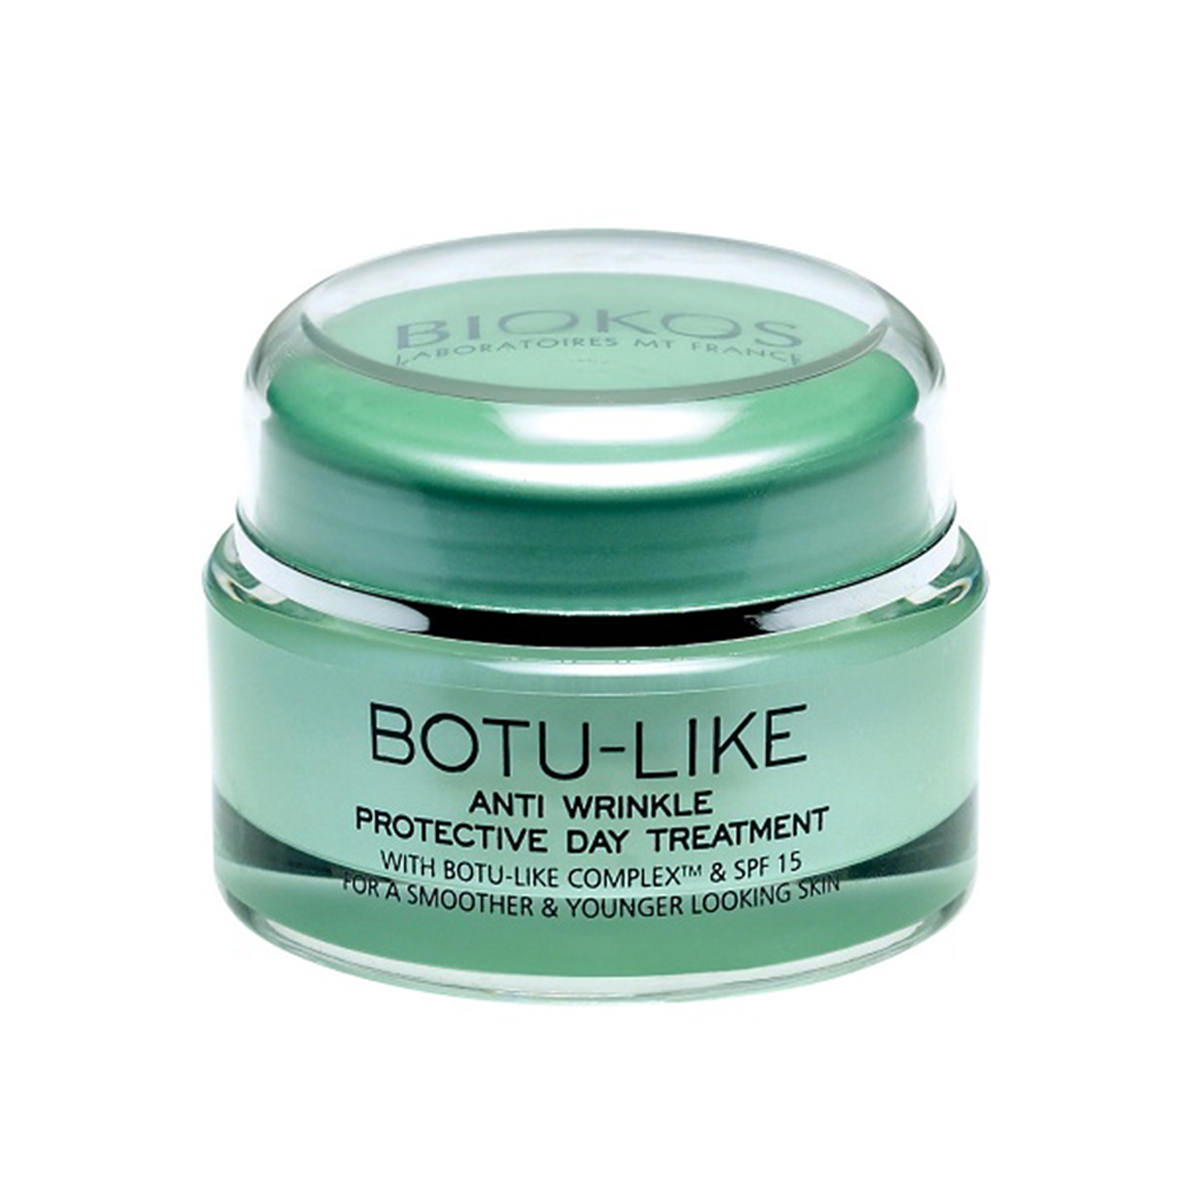 Biokos---Botu-Like-Anti-Wrinkle-Protective-Day-Treatment-sfw(1)